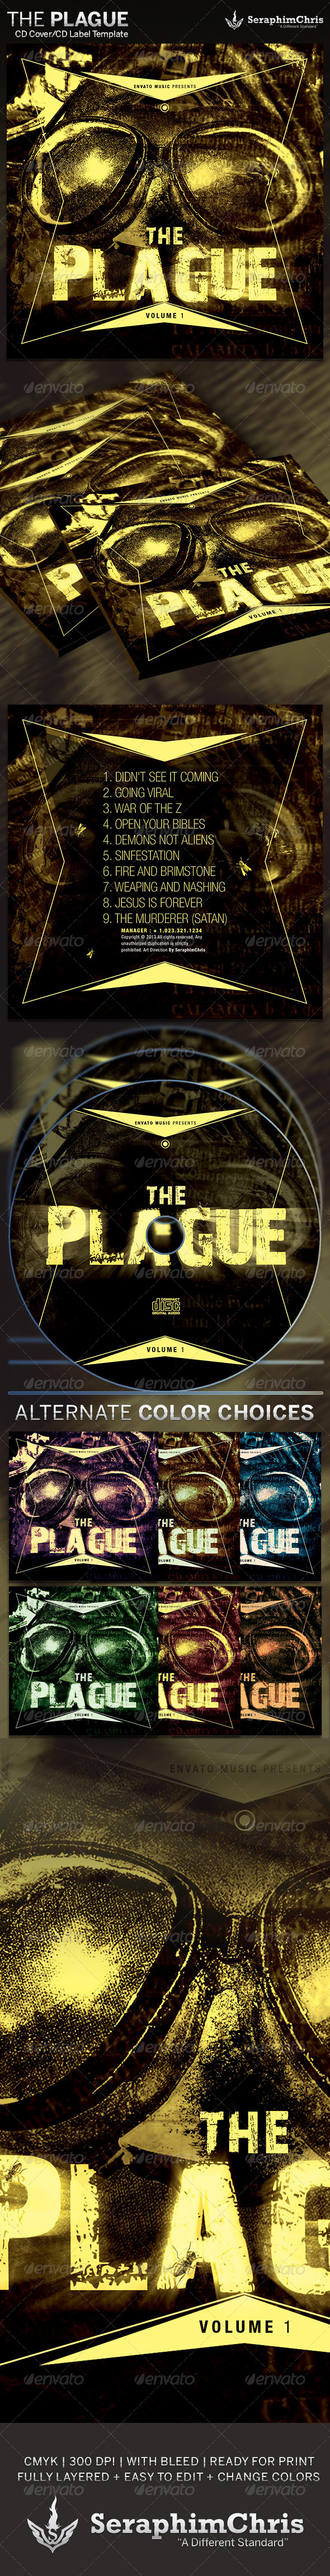 The Plague: CD Cover Artwork Template - CD & DVD artwork Print Templates